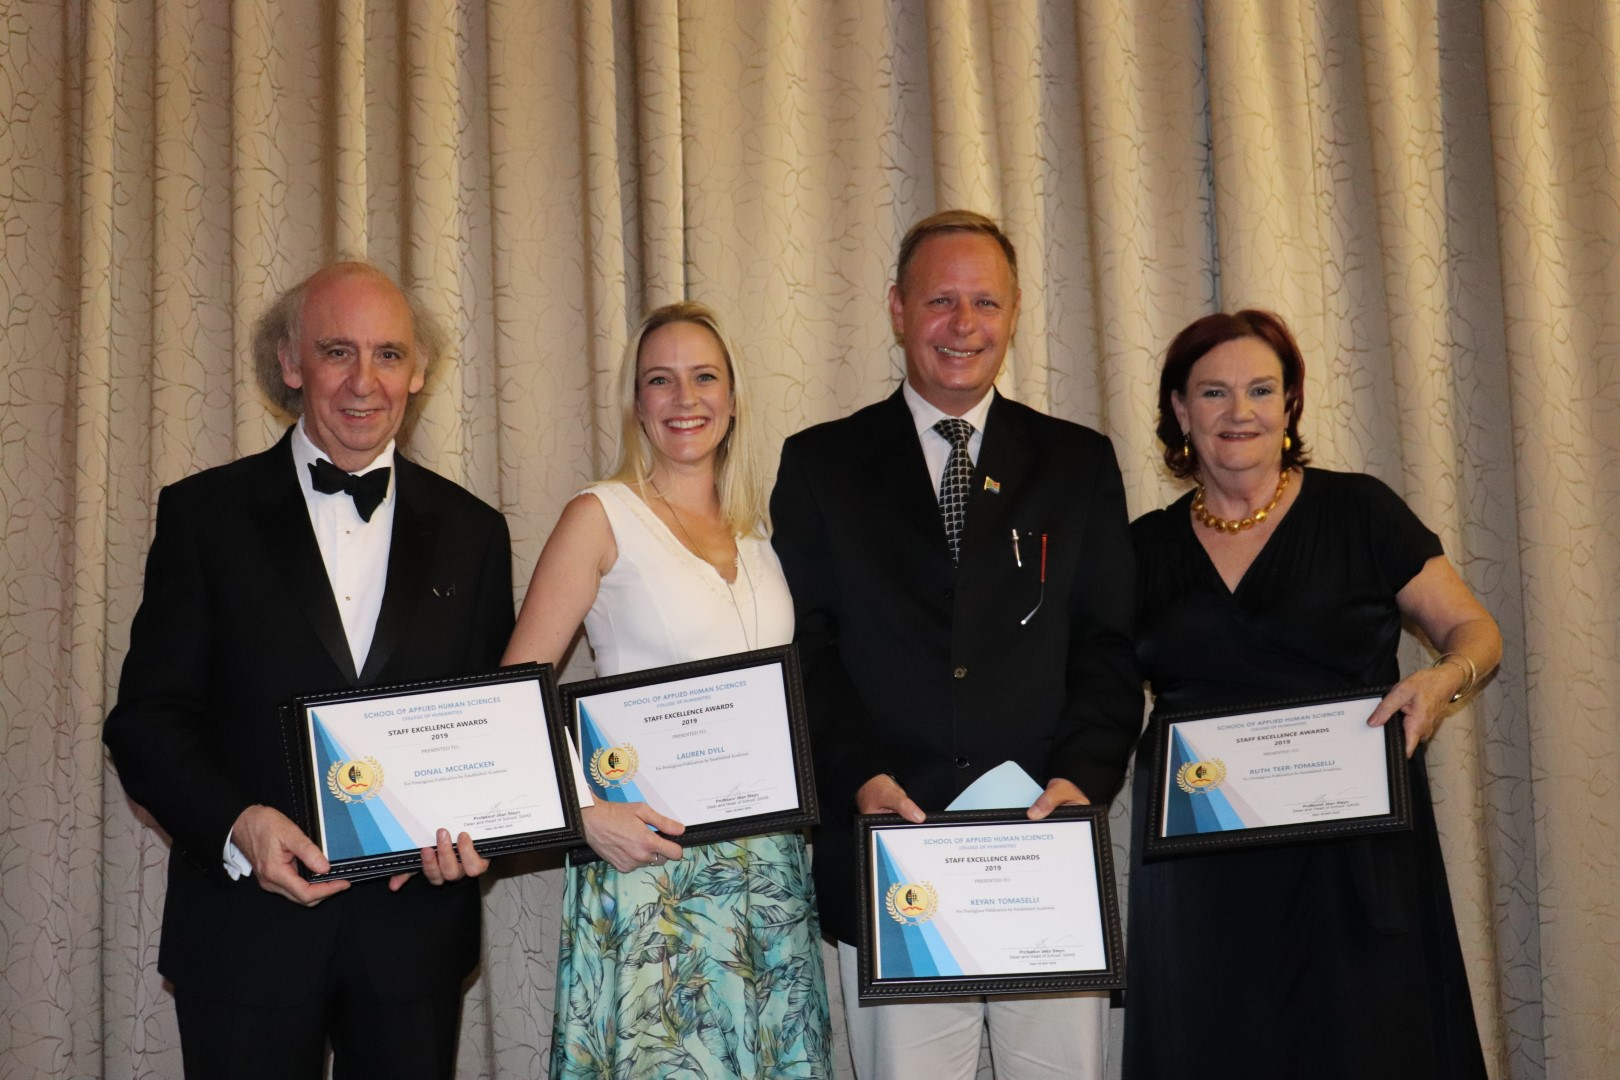 Highlights from the School of Applied Human Sciences staff awards.